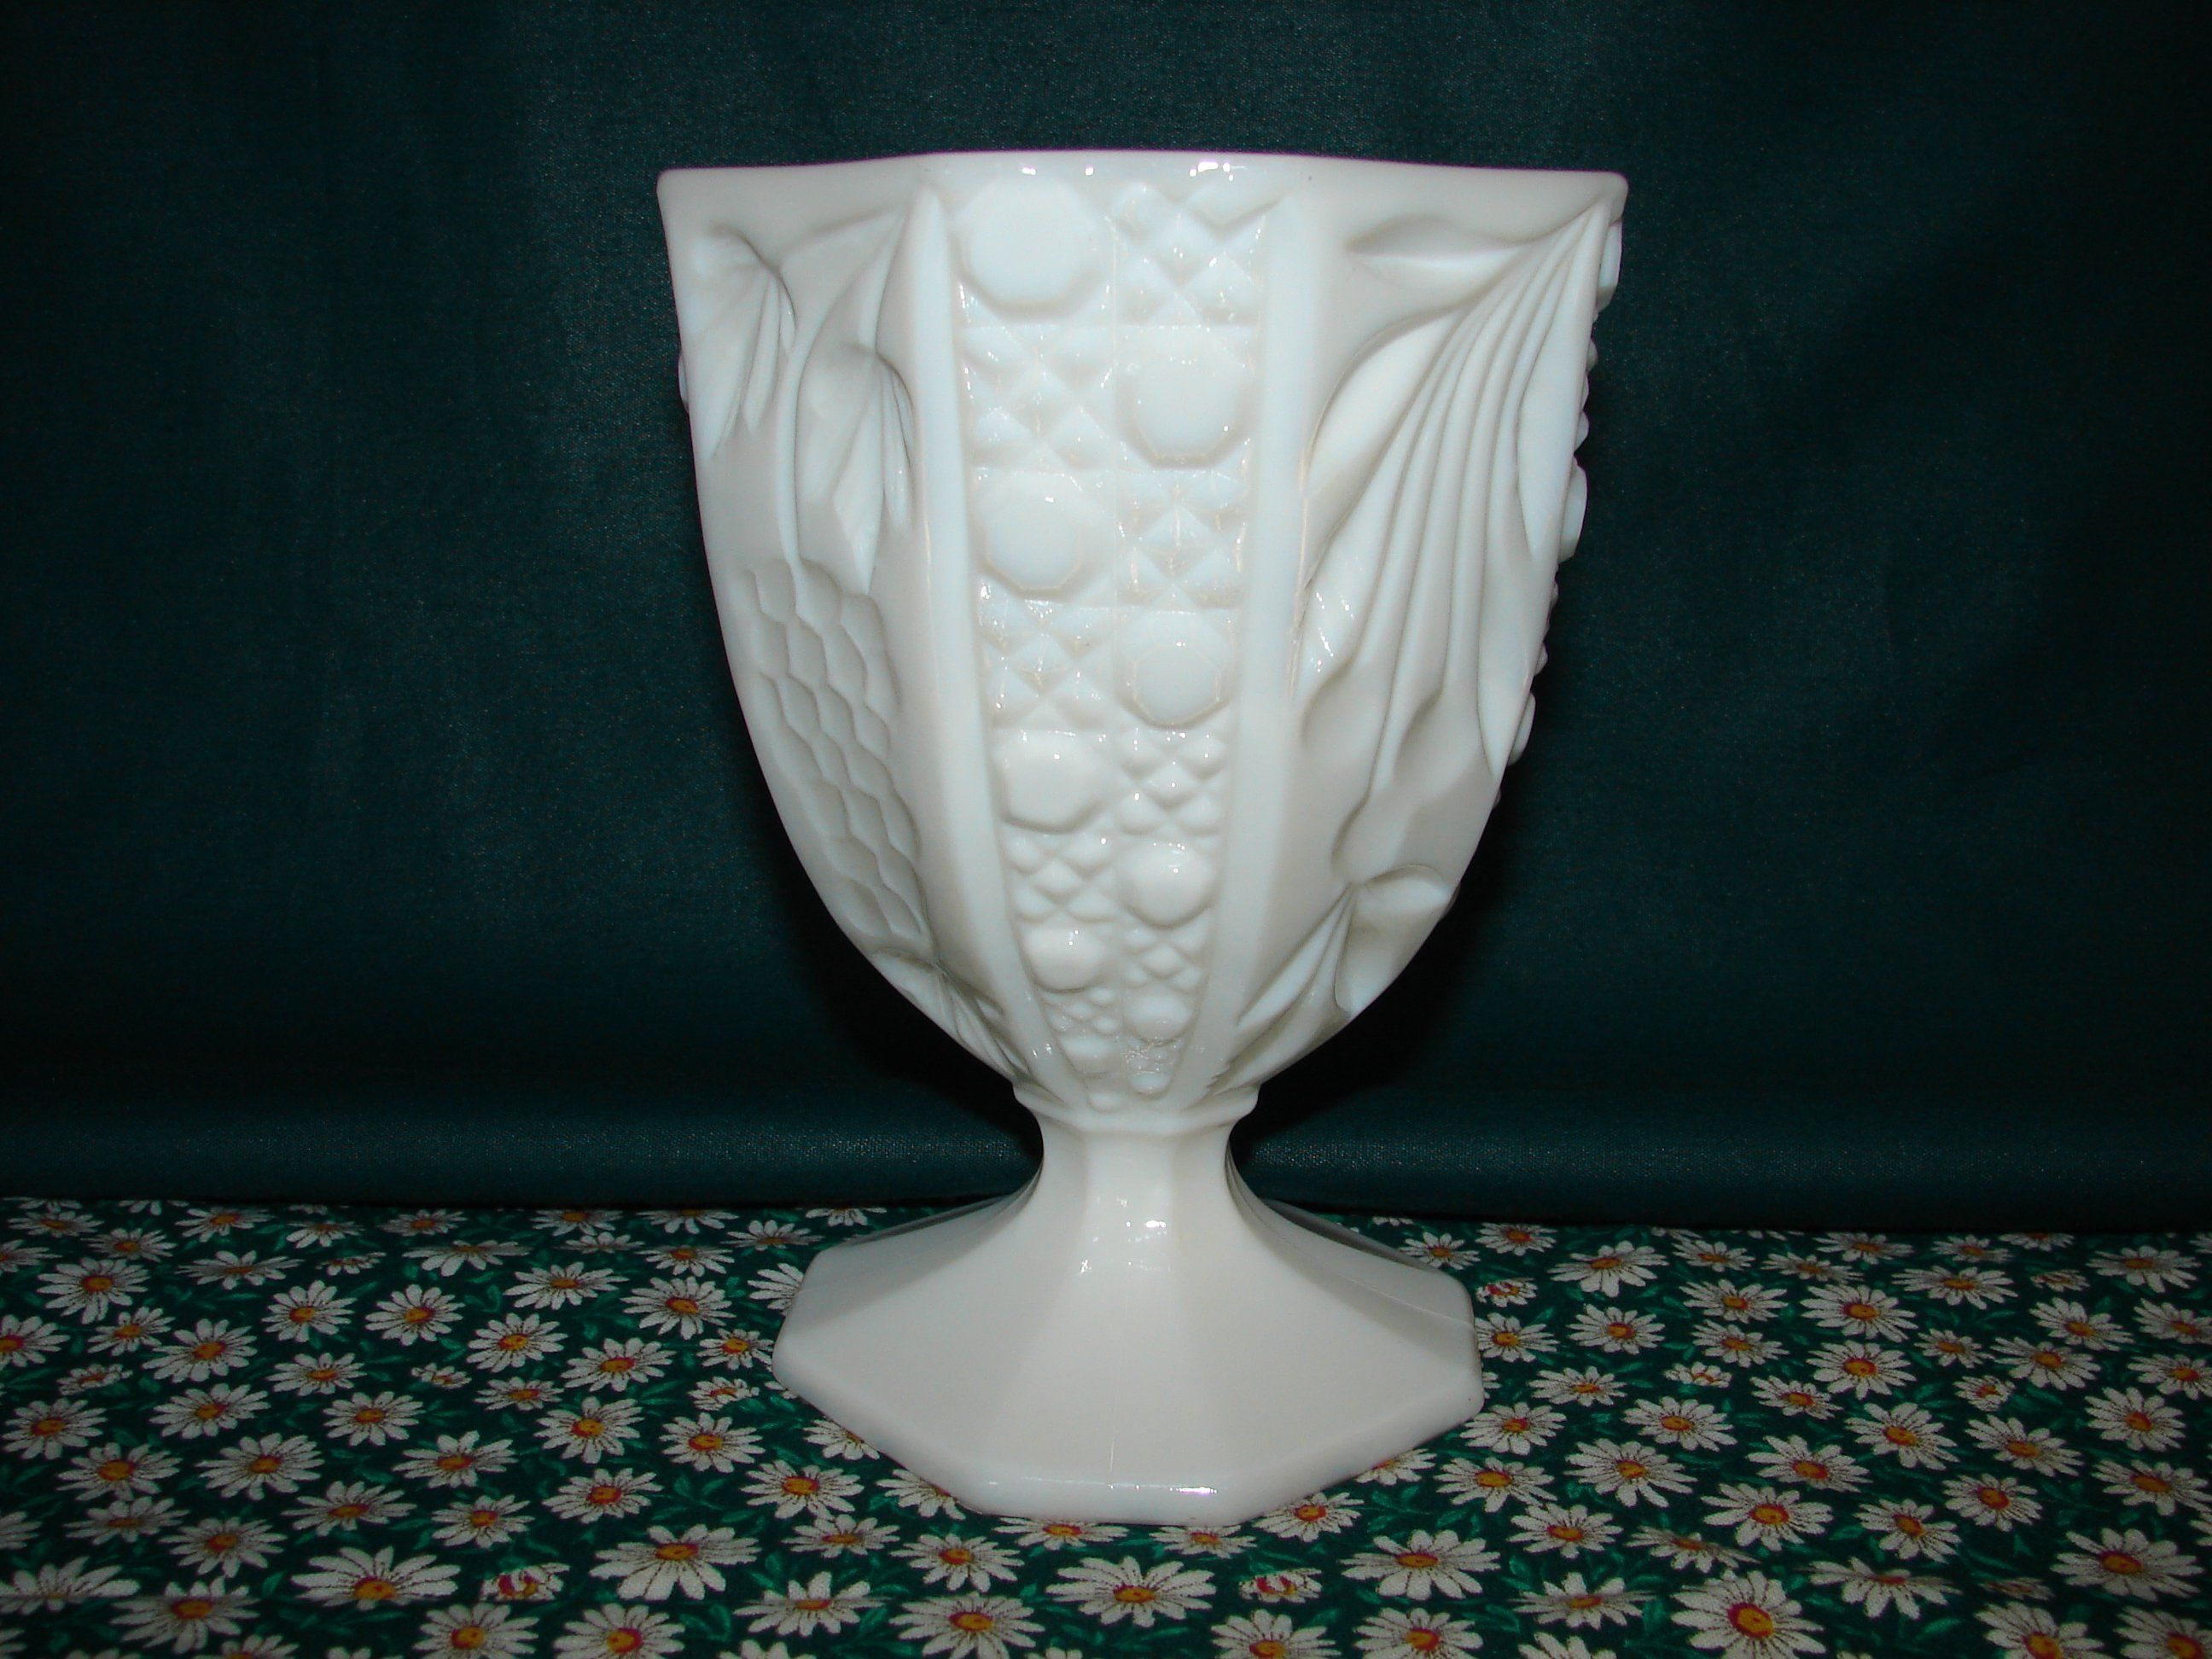 pedestal flower vase of candy dish paneled compote pedestal vase footed milk glass vase intended for candy dish paneled compote pedestal vase footed milk glass vase french cottage